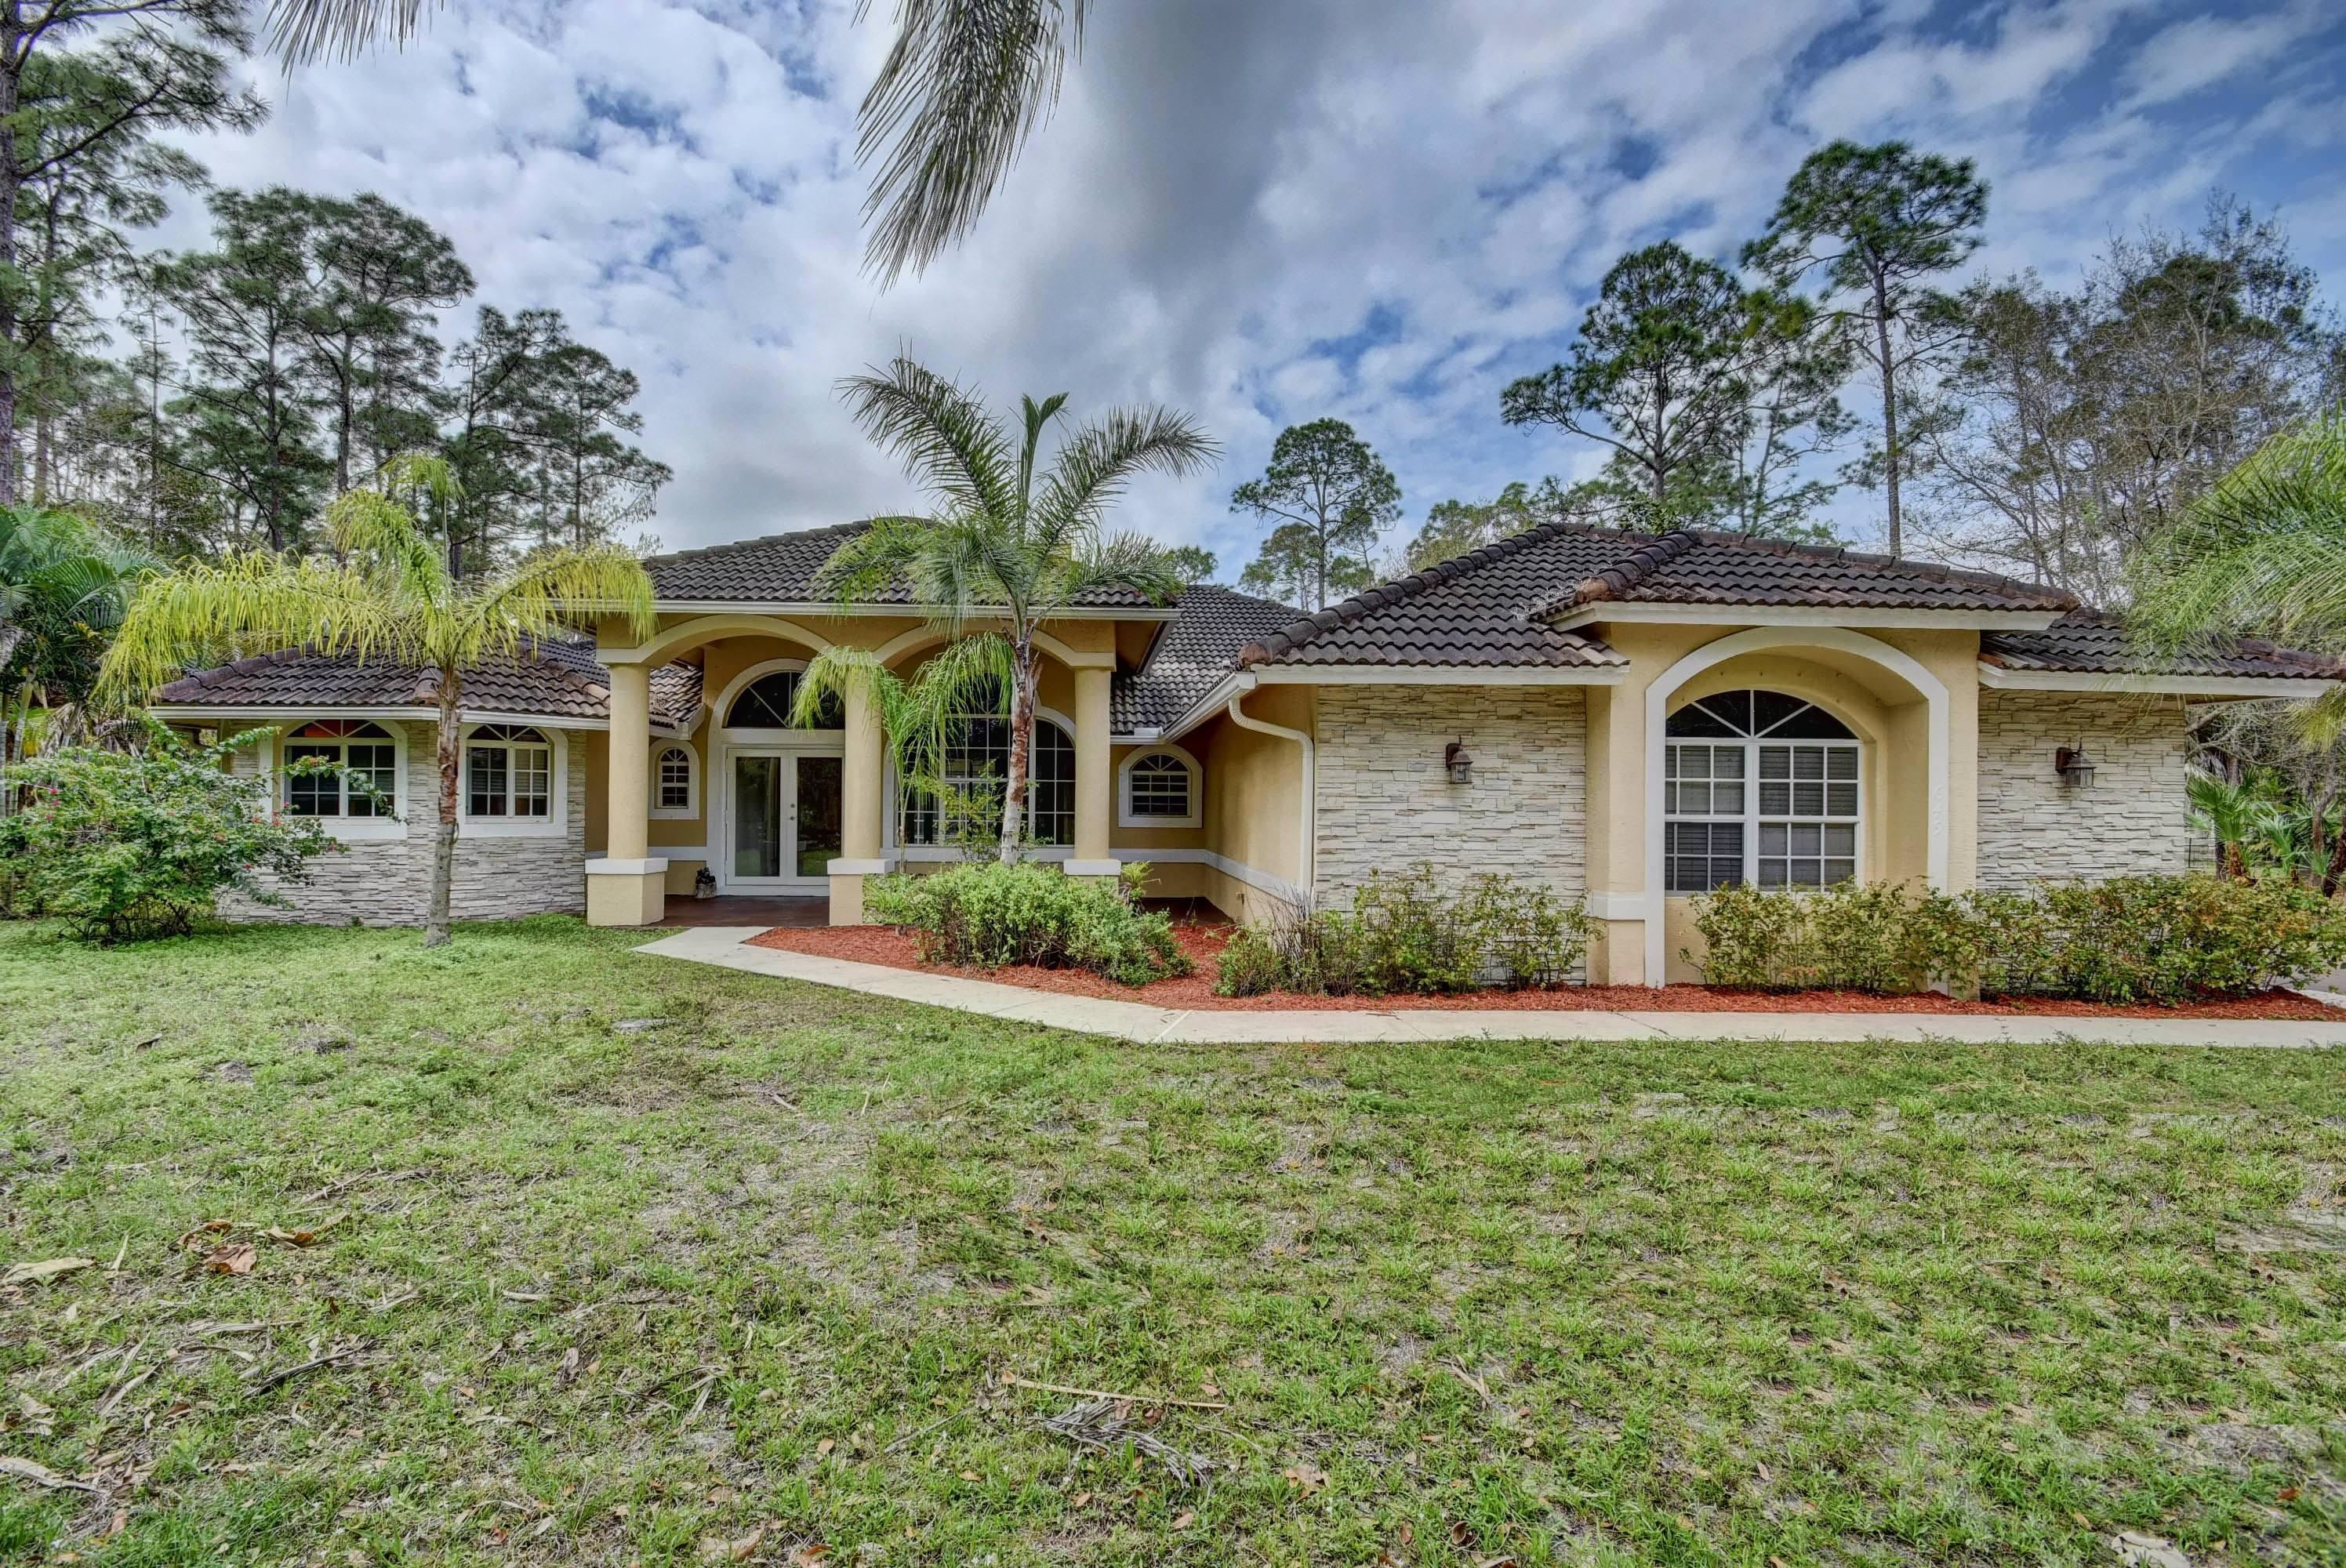 1649 Gallop Drive, Loxahatchee in  County, FL 33470 Home for Sale